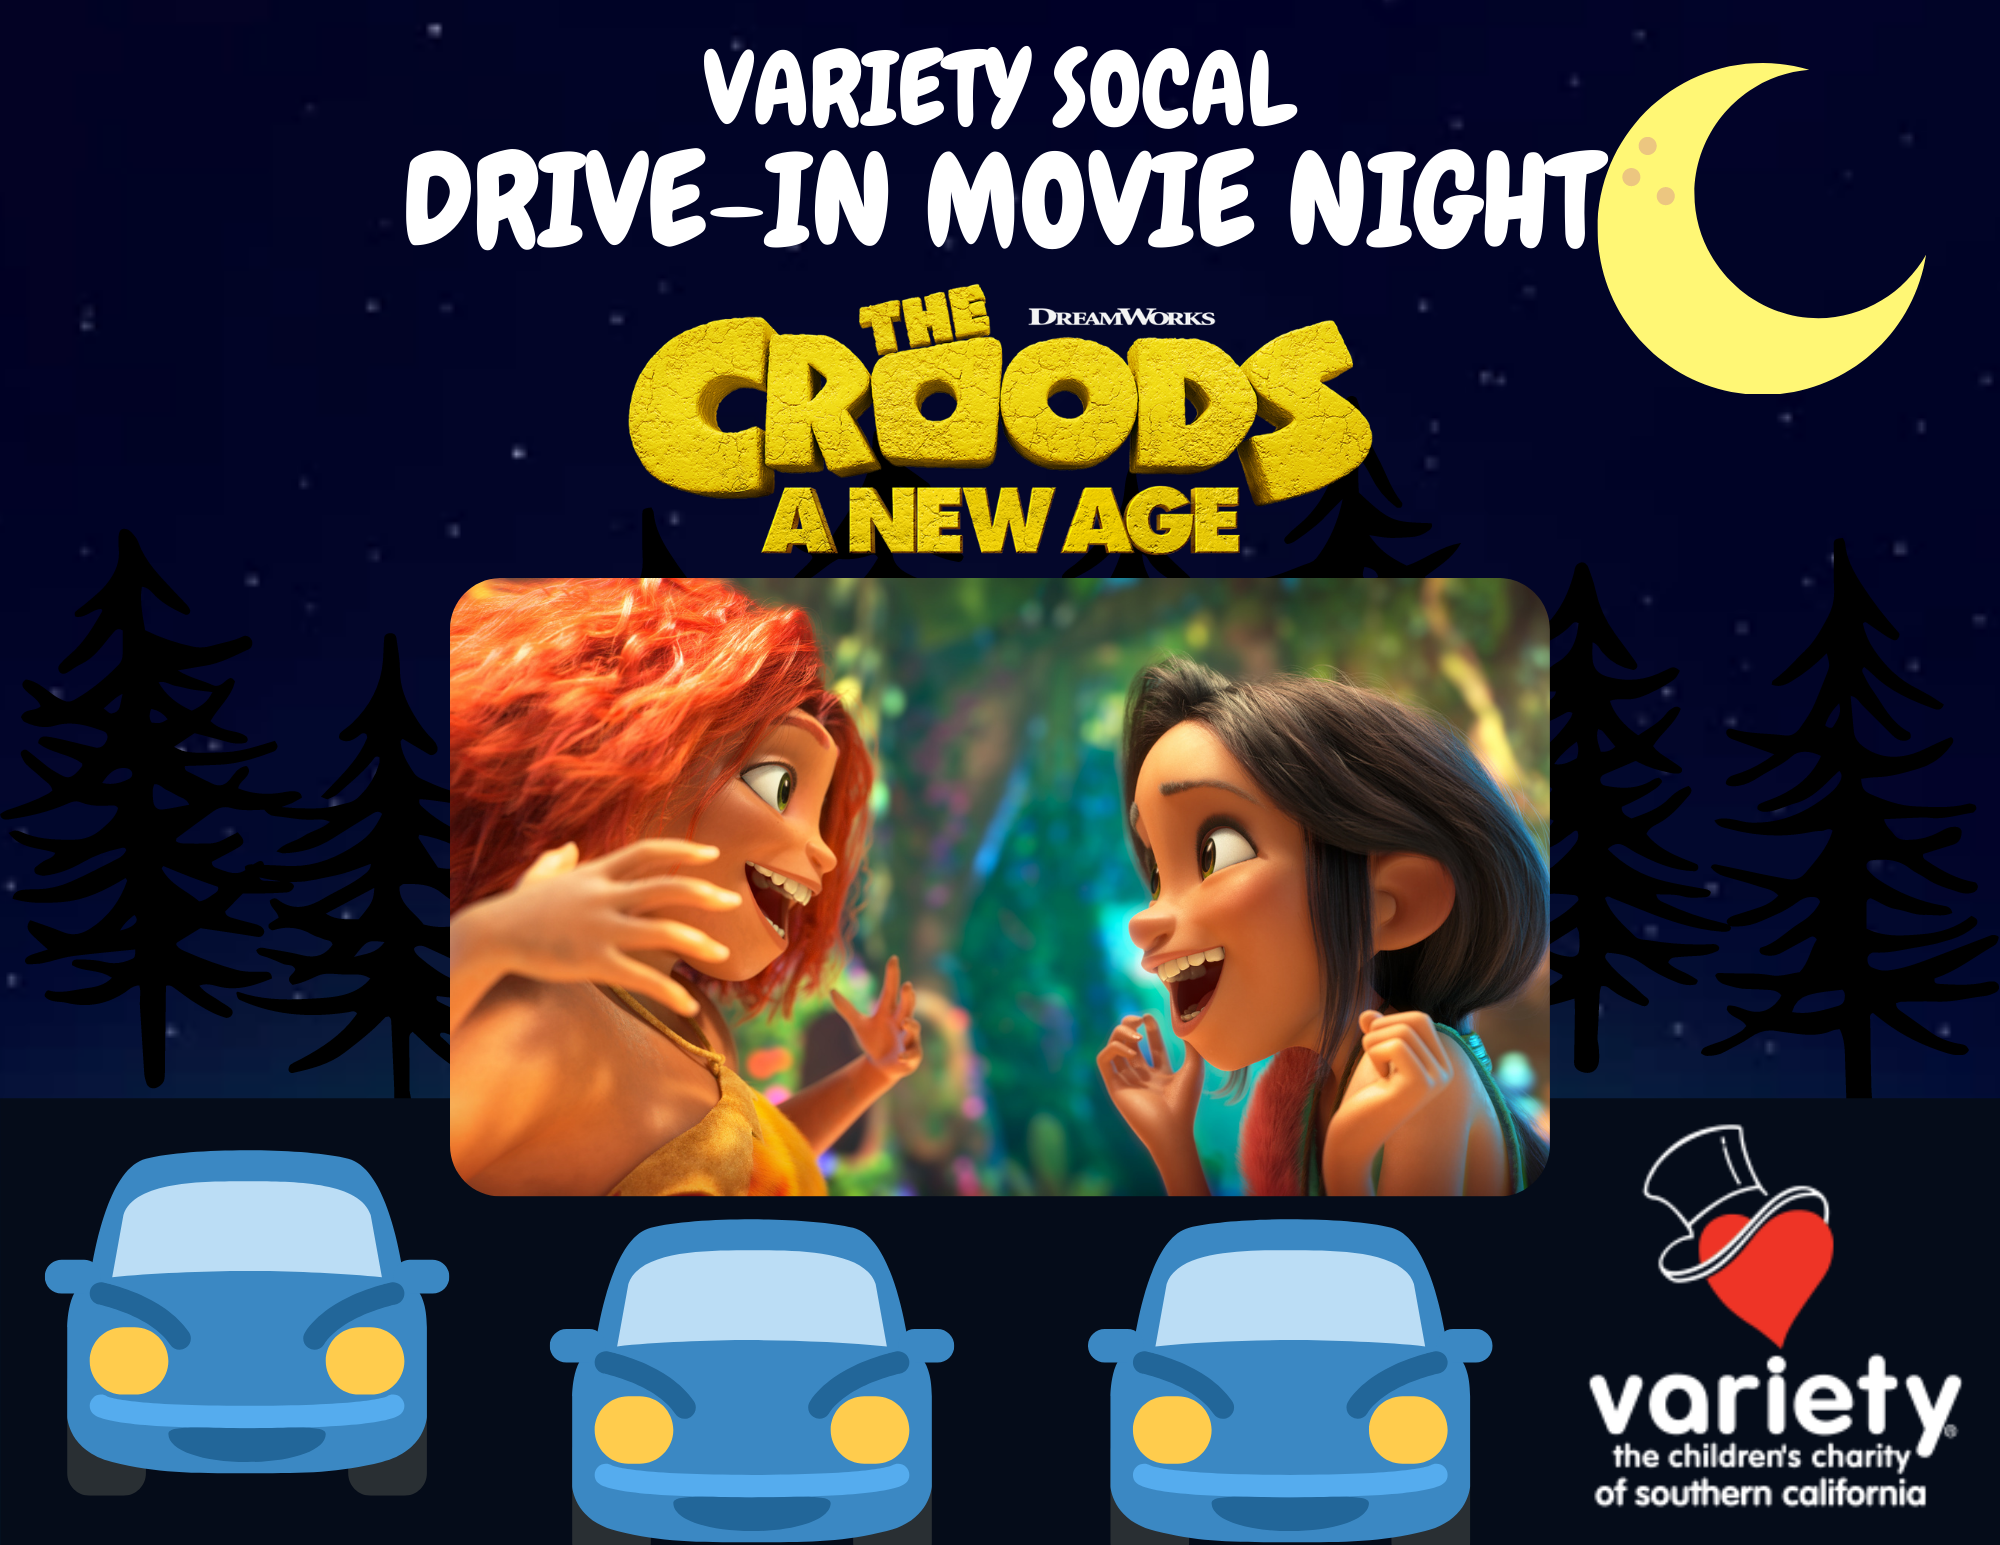 Variety at the Drive-In